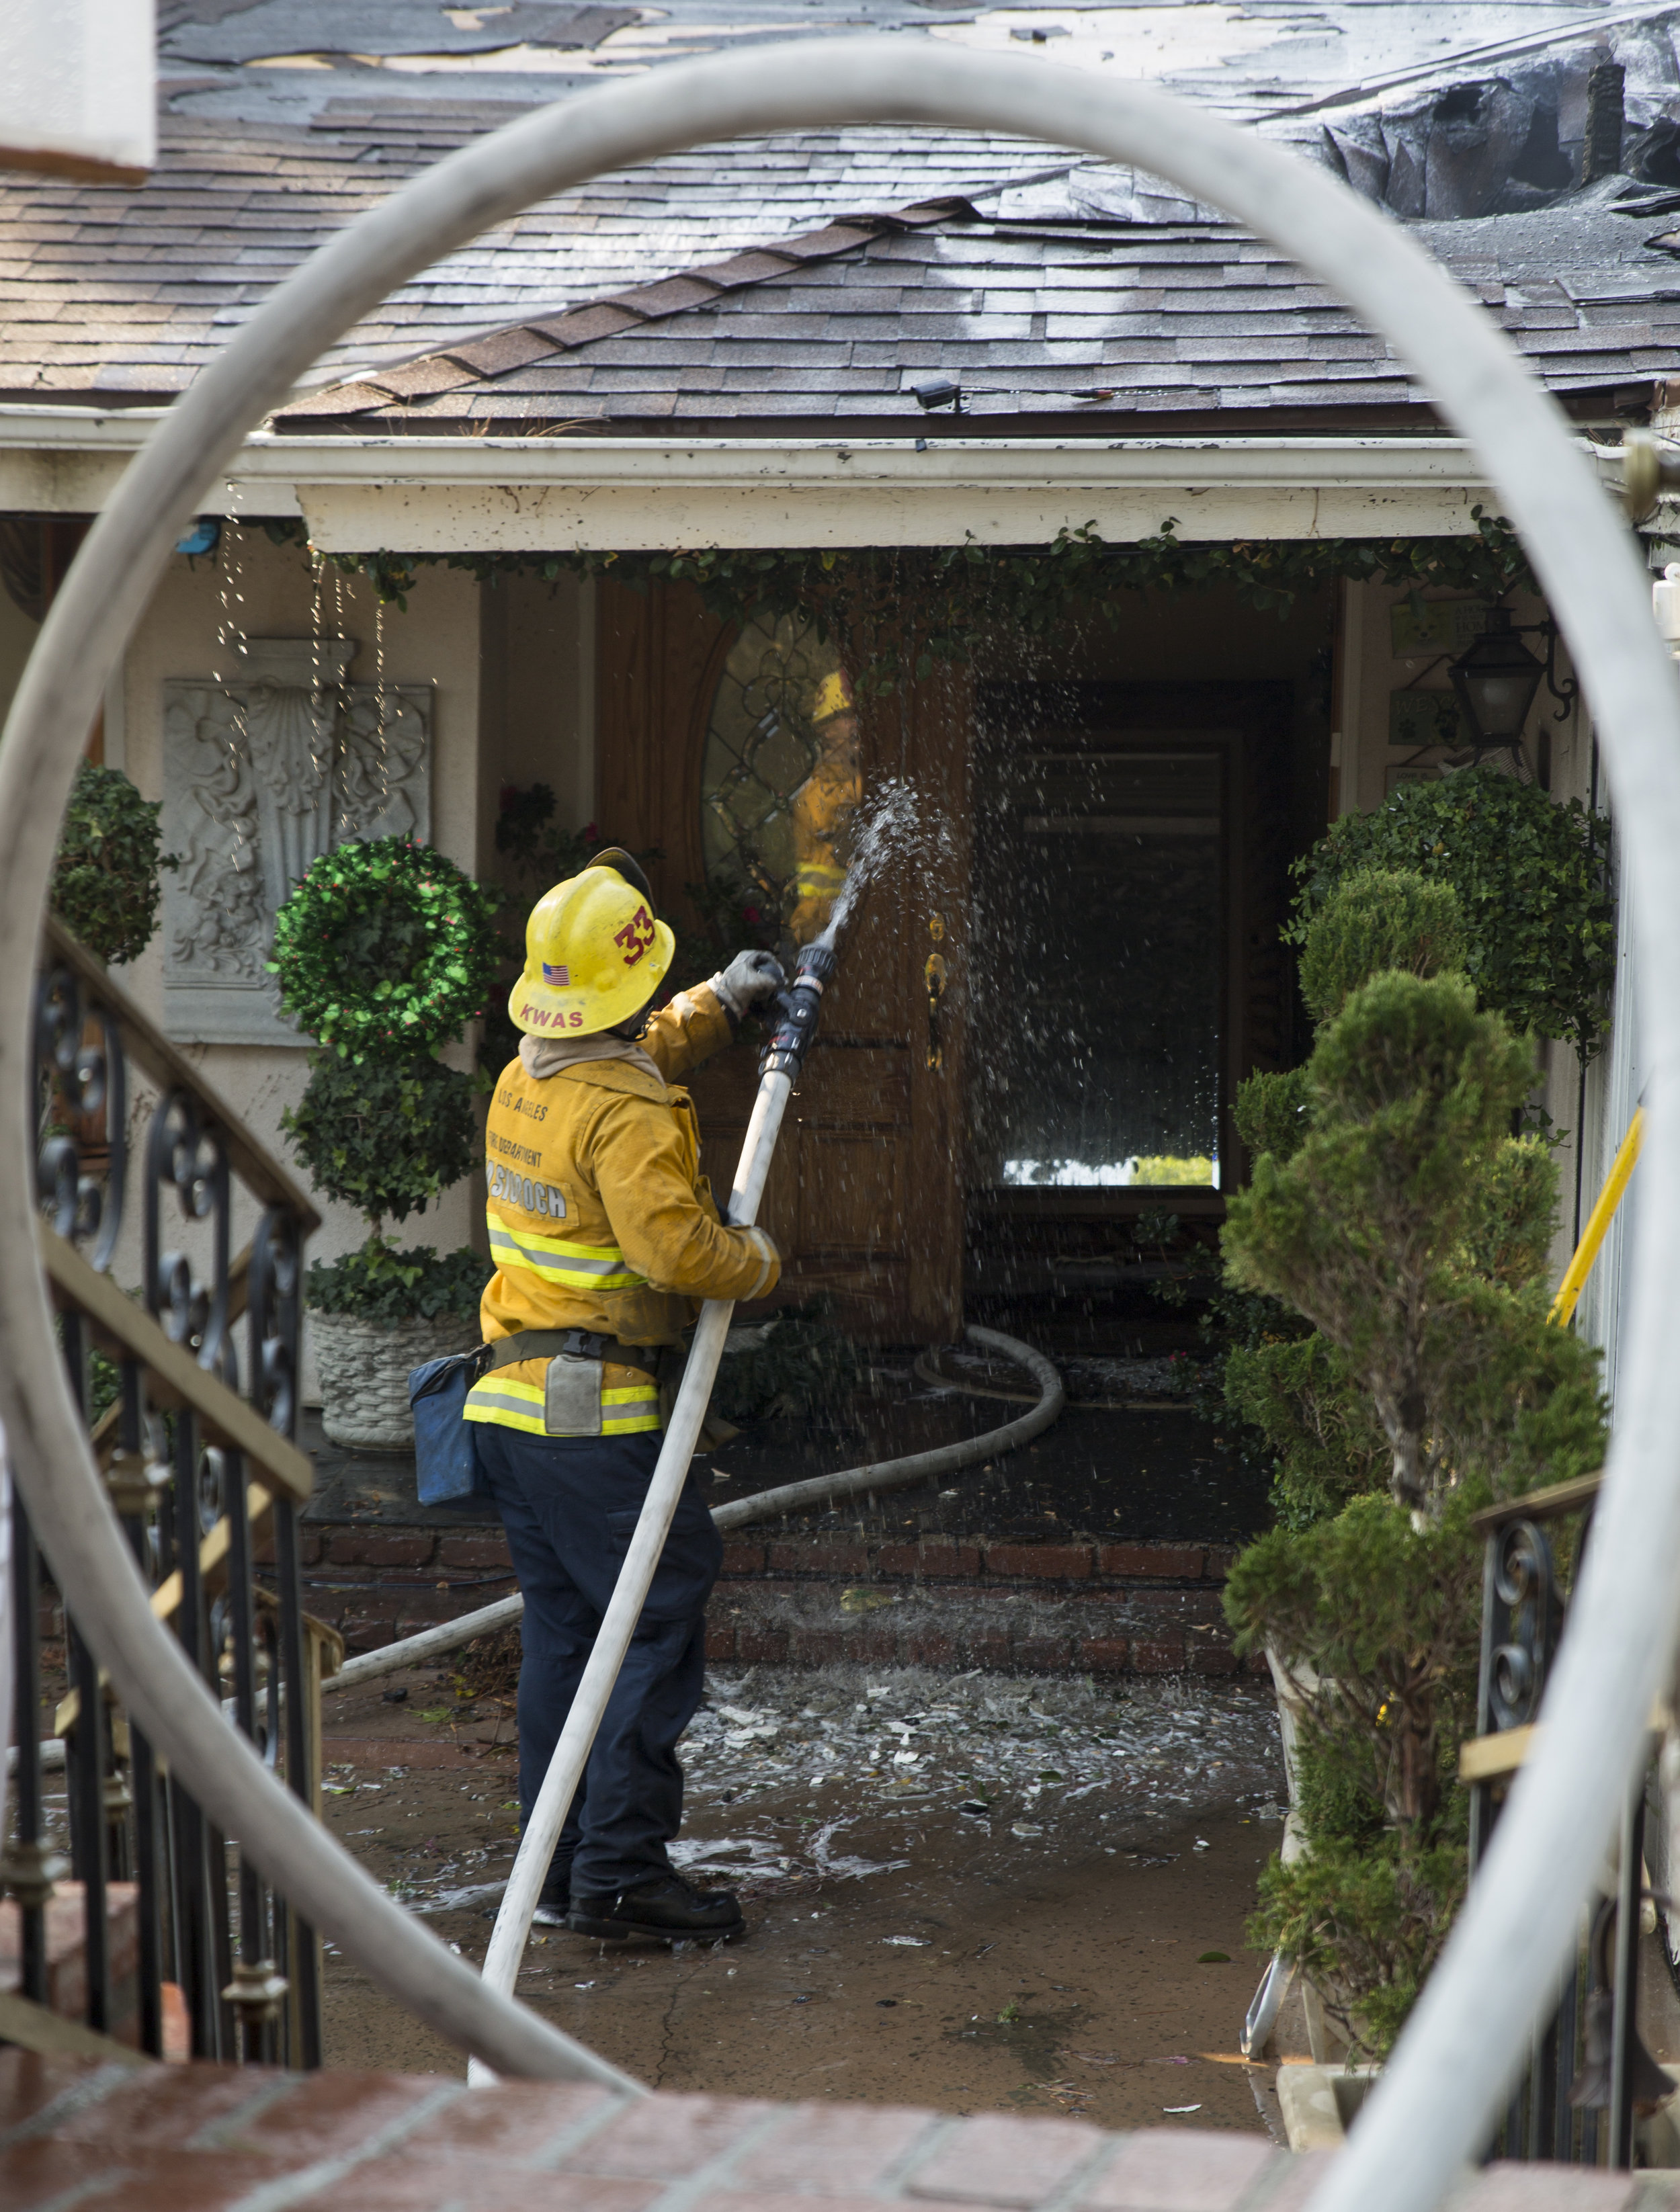 Los Angeles City firefighters fight to save one of the two homes on fire along Casiano Road in Bel-Air during the Skirball Fire on Wednesday, Dec.6, 2017 in Los Angeles, Calif. (Photo by Jose Lopez)